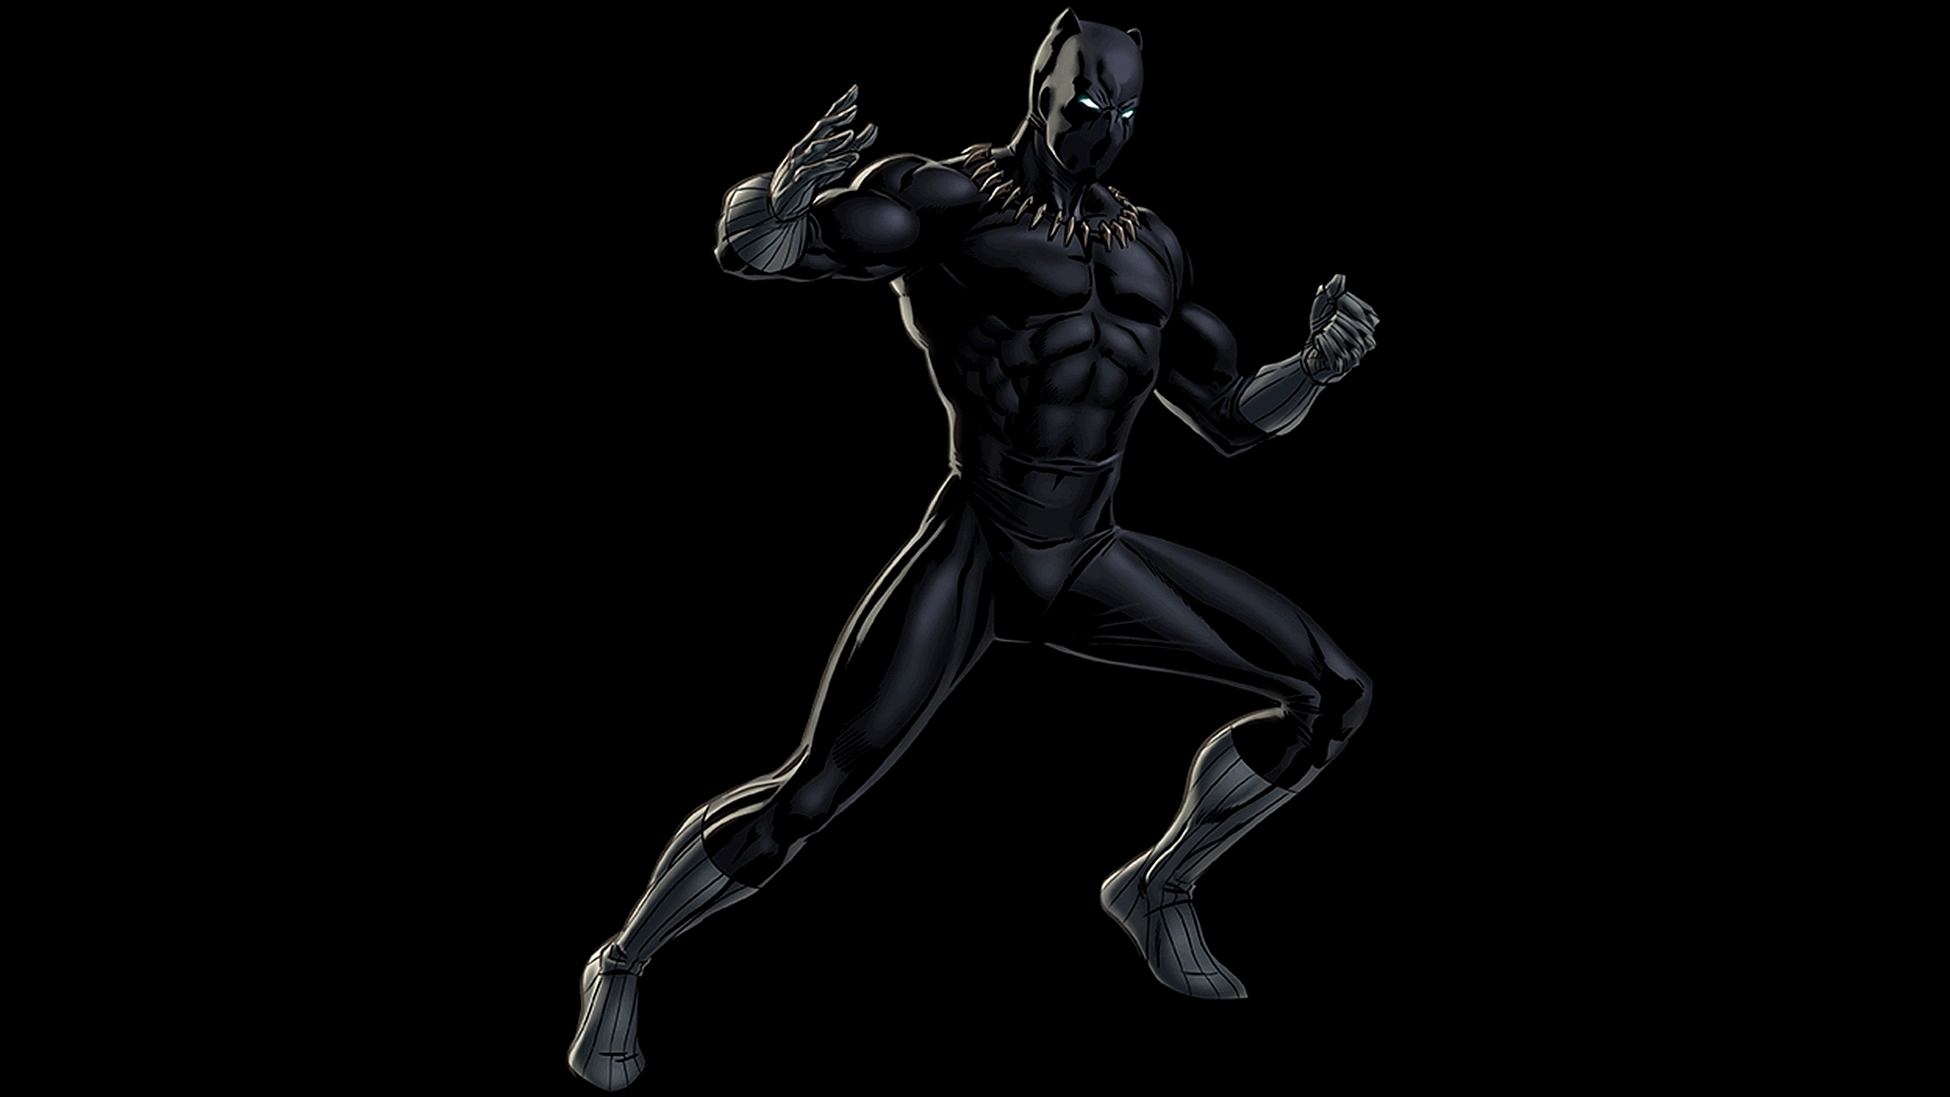 Comics   Black Panther Marvel Black Panther Wallpaper 1950x1097